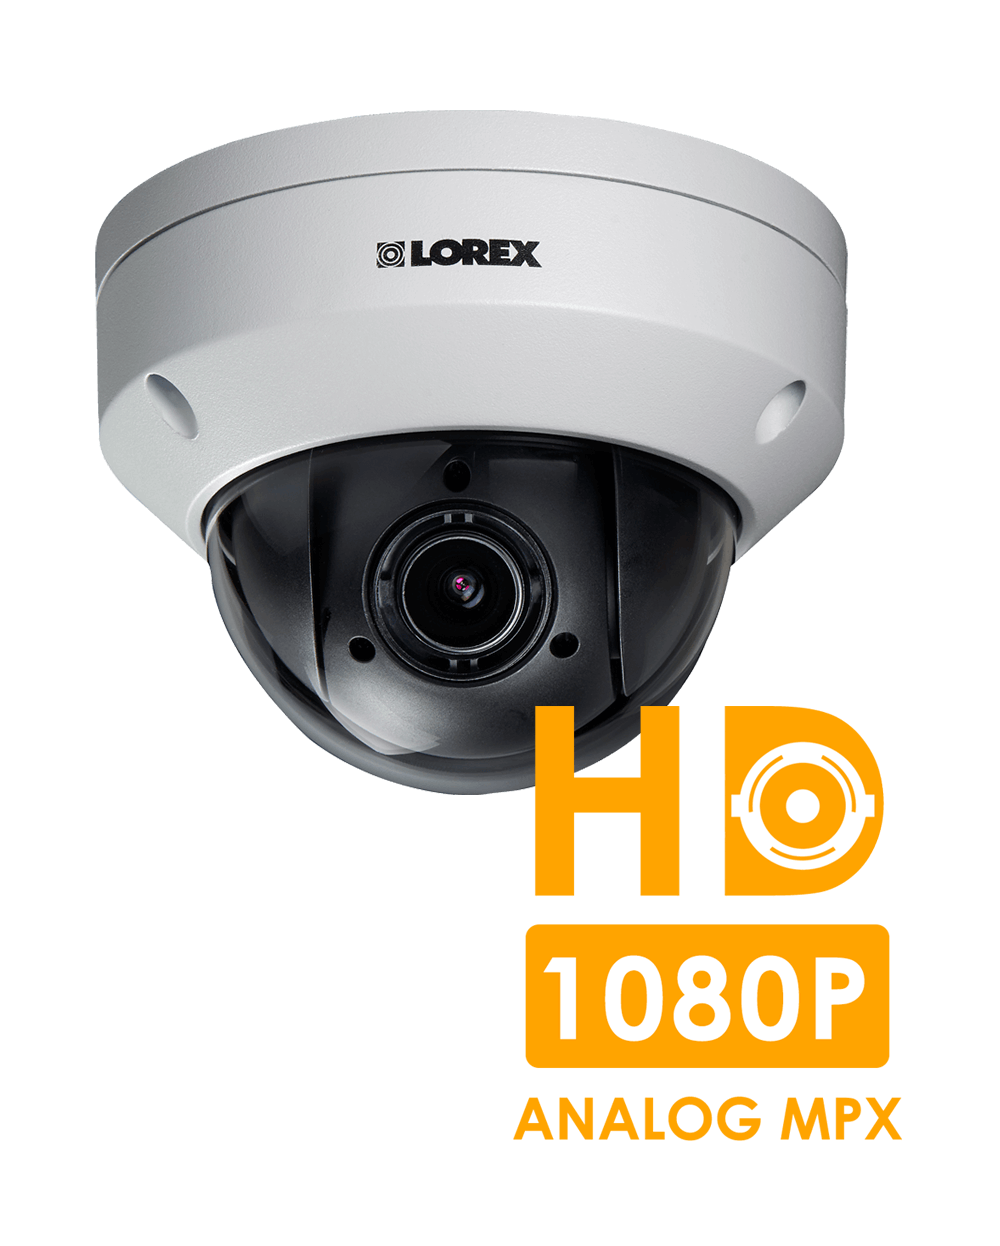 1080p HD security camera with PTZ